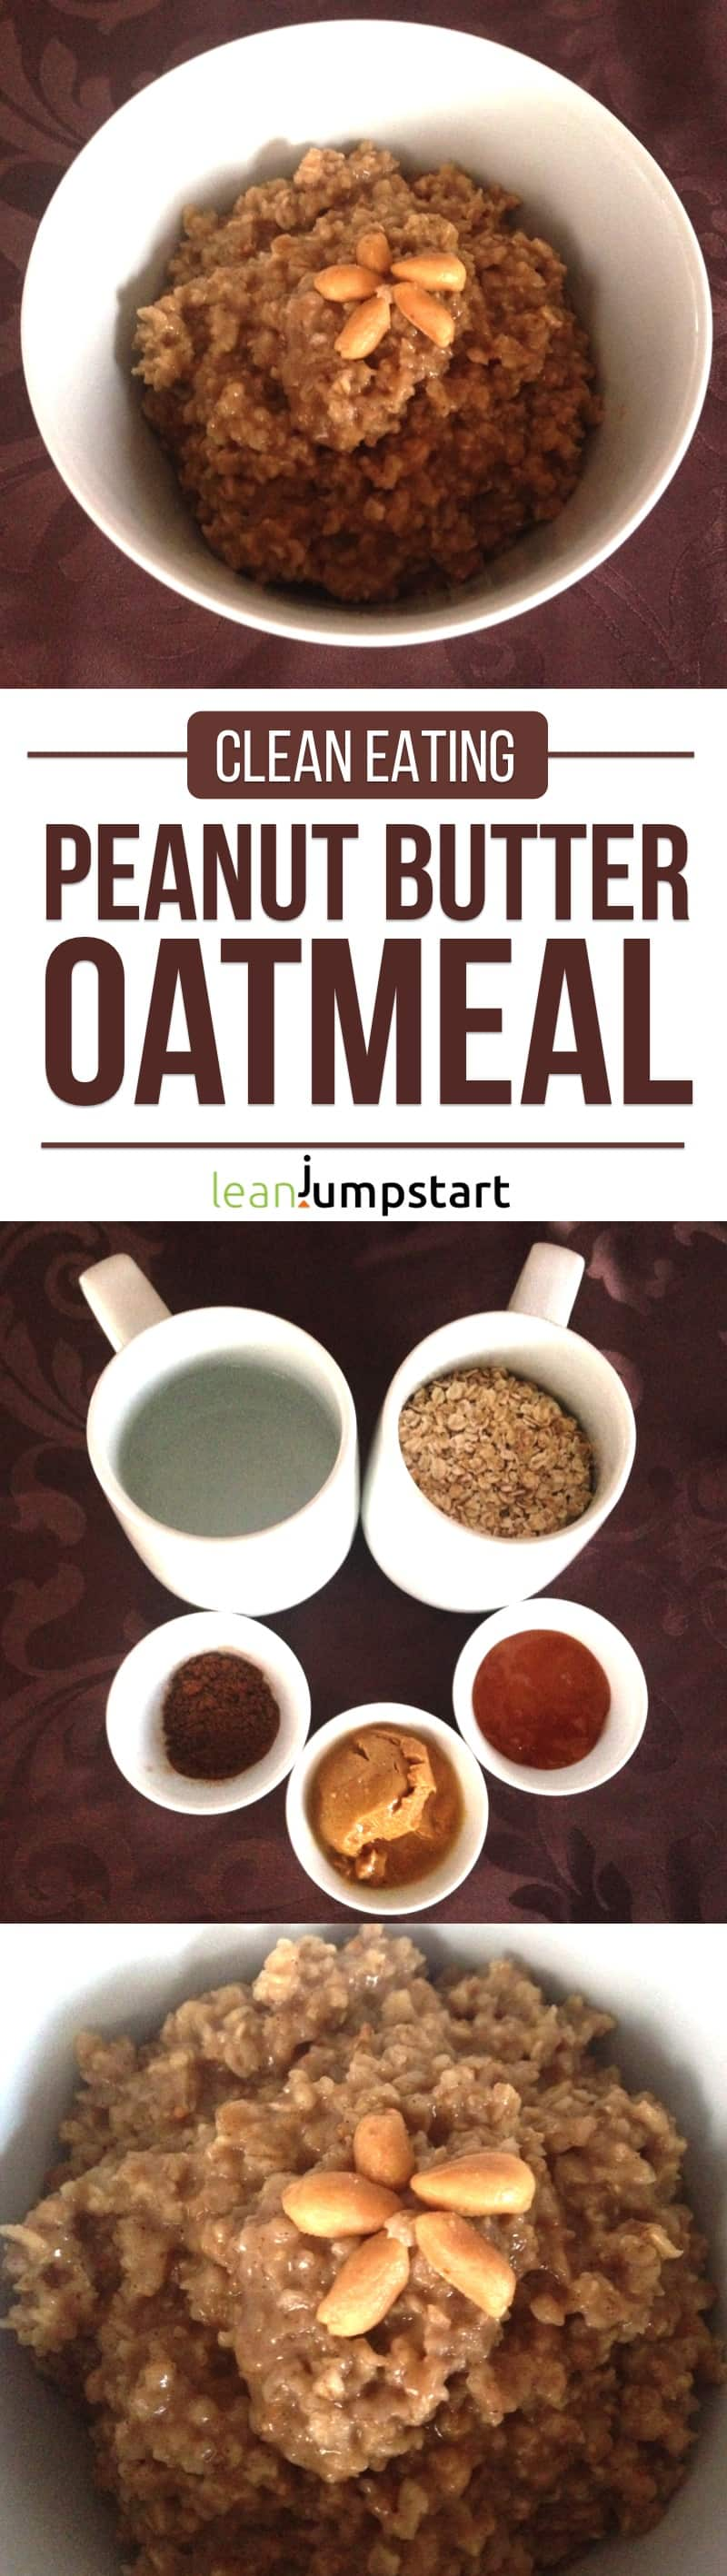 clean eating peanut butter oatmeal recipe: delicious and filling